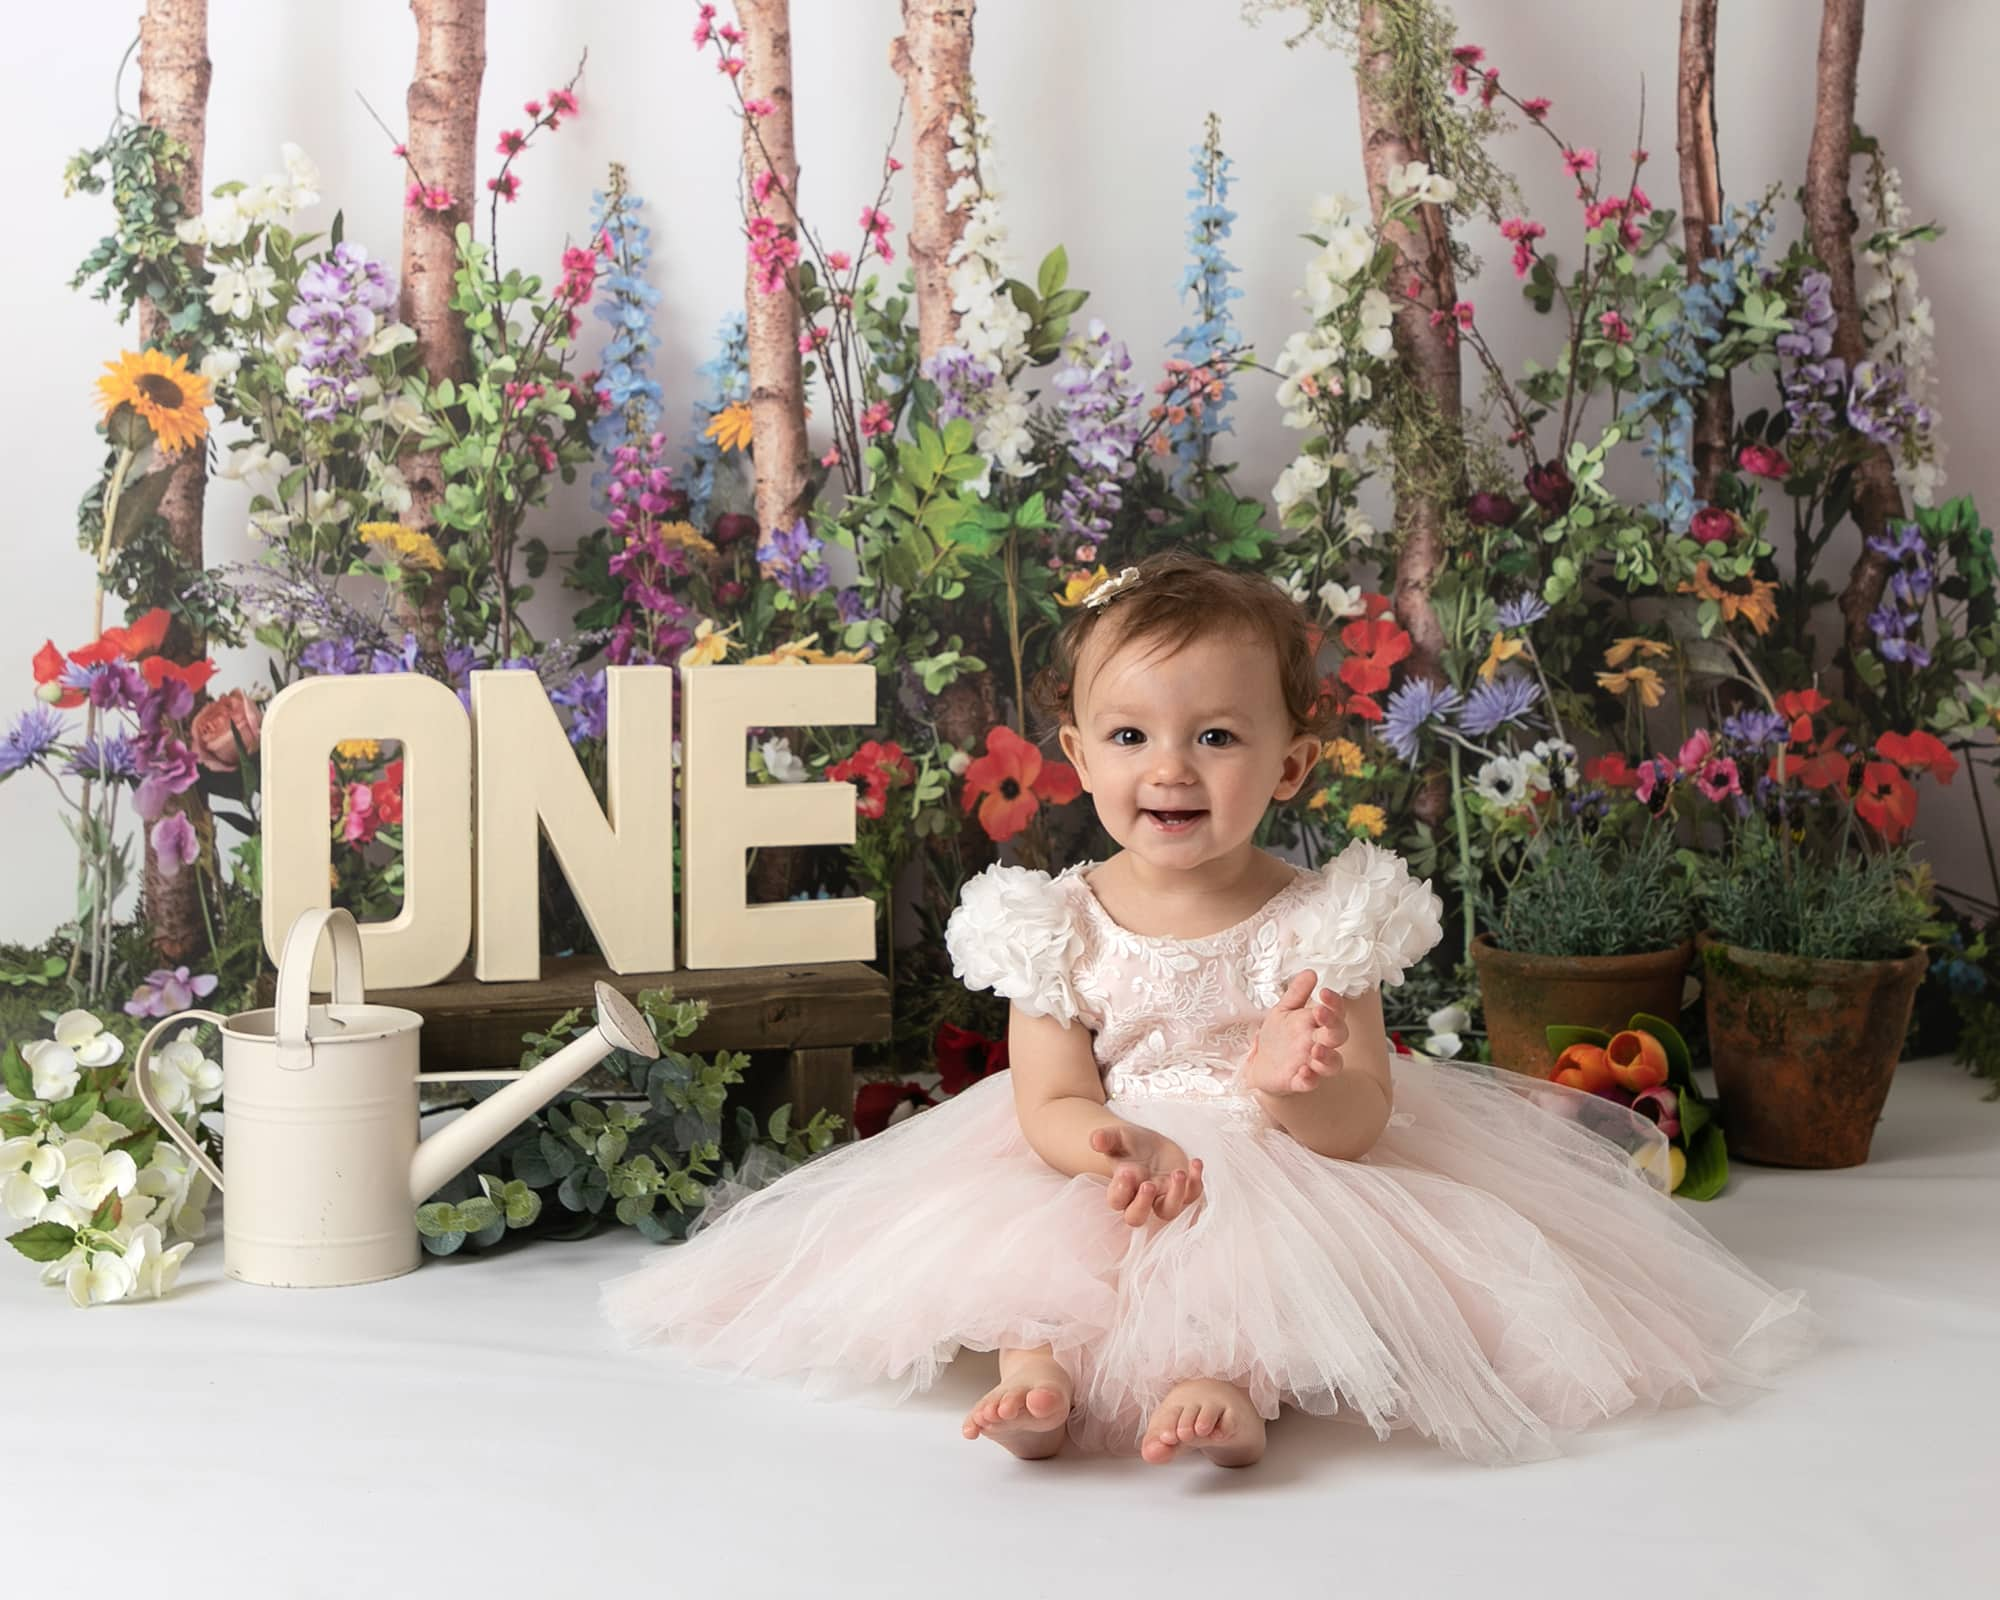 Glasgow photographer cakesmash photoshoot for 1st birthday. Little girl in pink tulle dress sat in front of a floral meadow scene with one letters on background